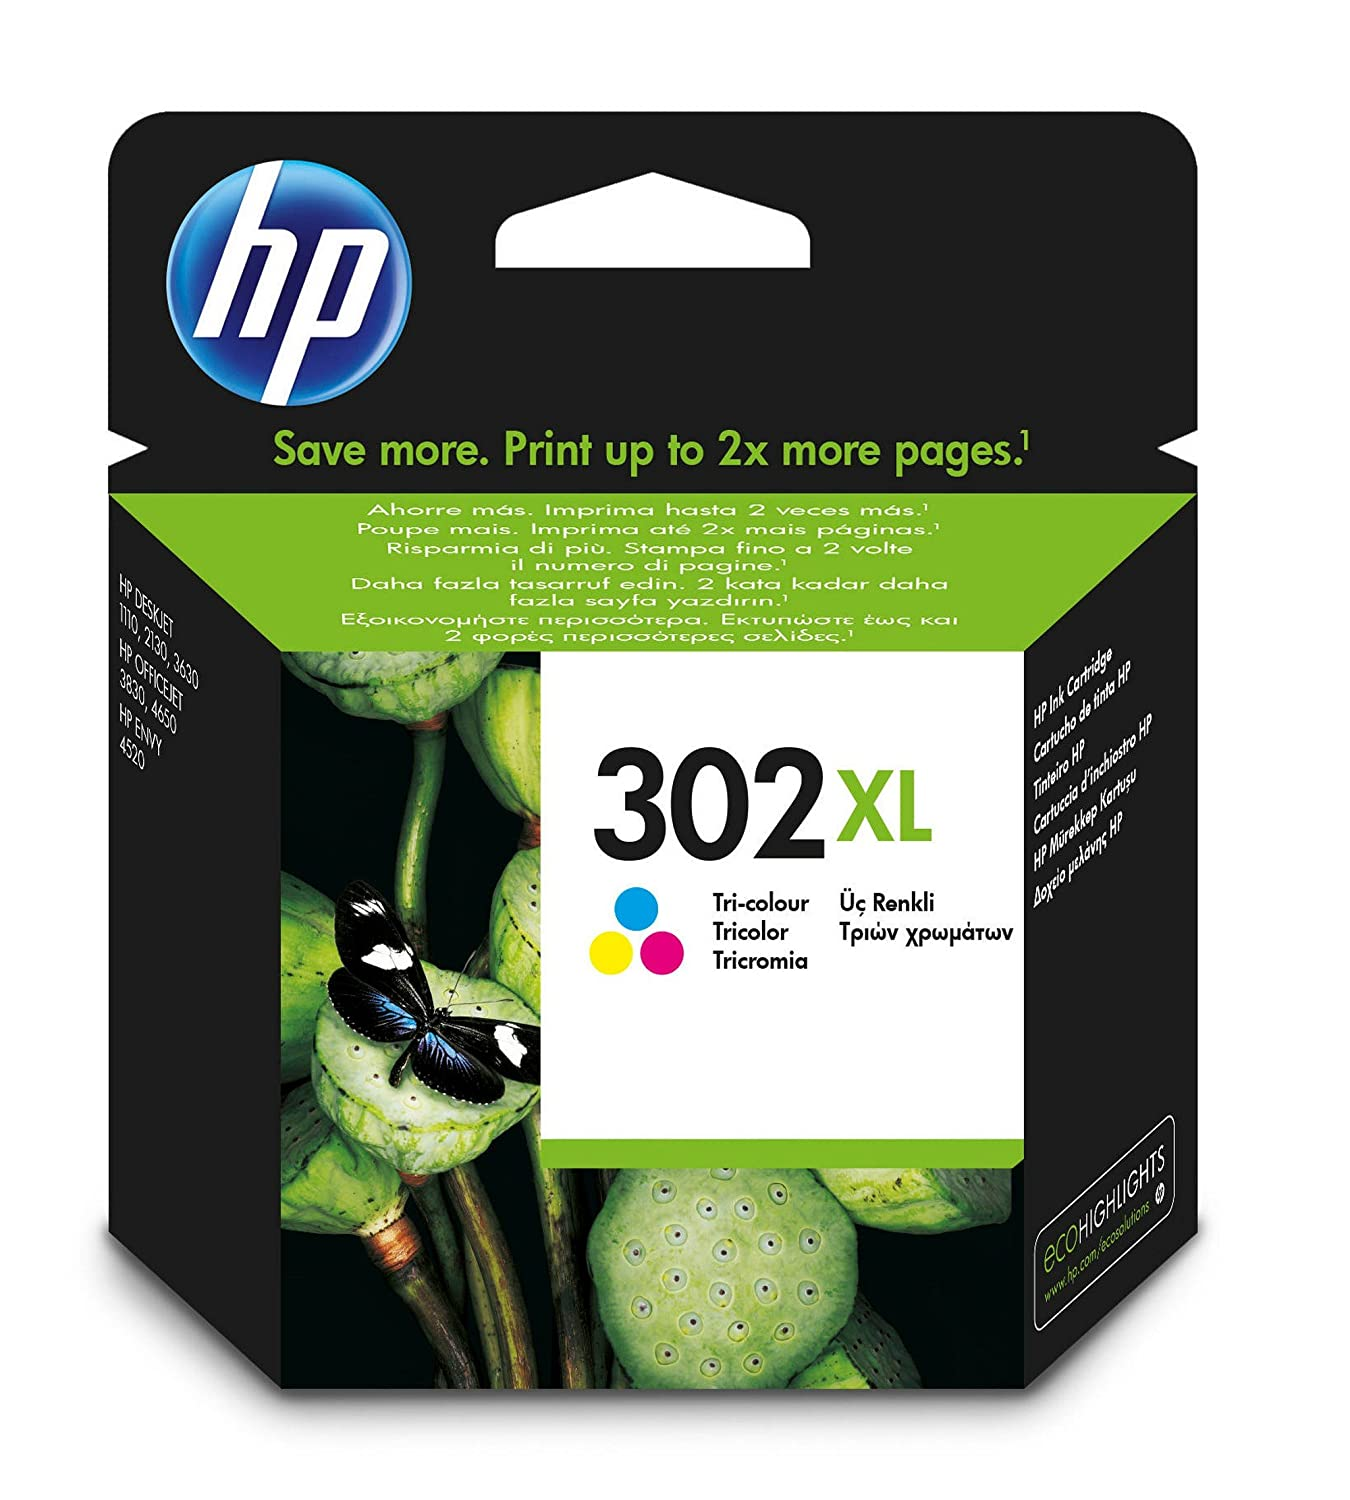 HP XL Cartucho de tinta Original HP XL Tricolor para HP DeskJet